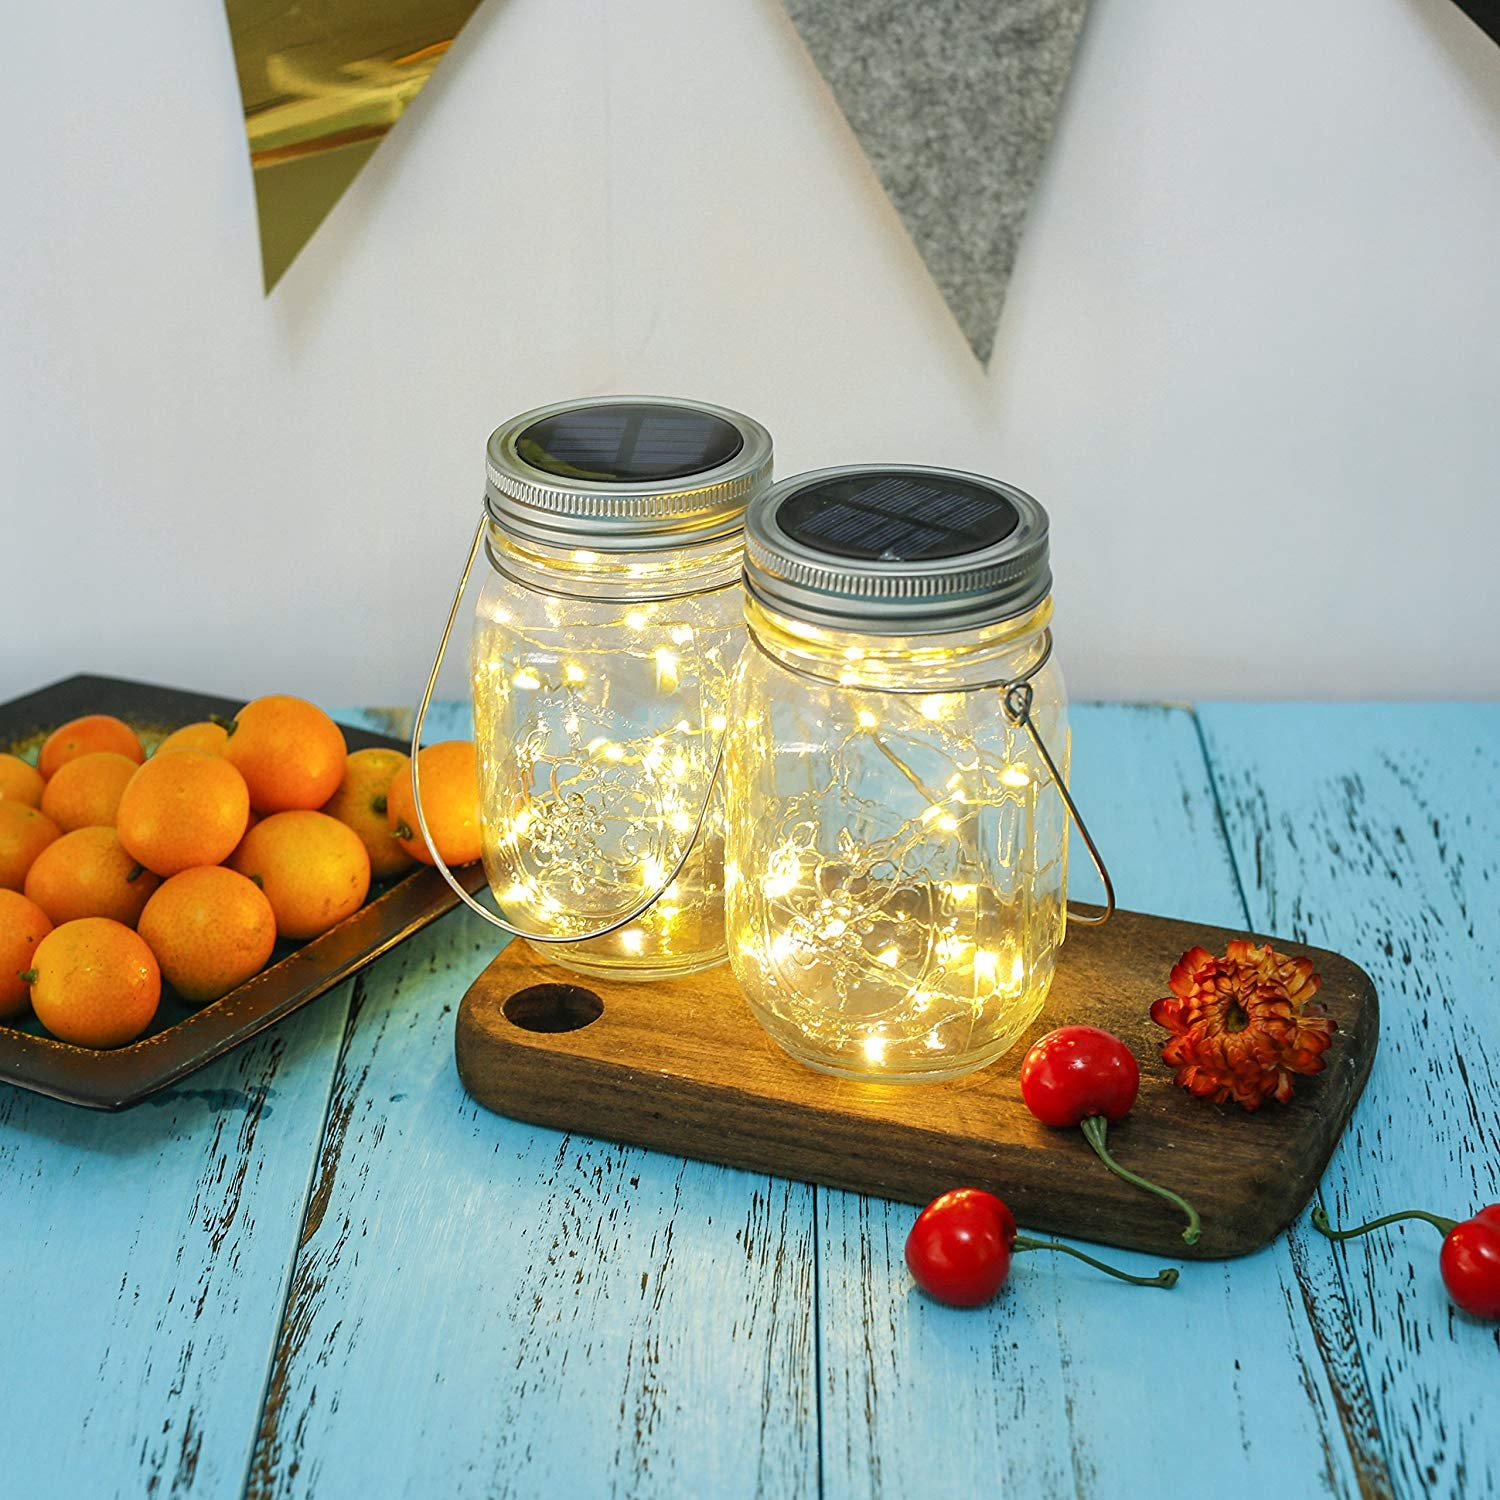 Solar Mason Jar Lights, Adecorty Outdoor Hanging Lights 2 Pack 20 LED String Fairy Star Firefly Jar Lights (Jars & Hangers Included) Warm White Waterproof Solar Lanterns for Garden Patio Outdoor Decor by Adecorty (Image #9)